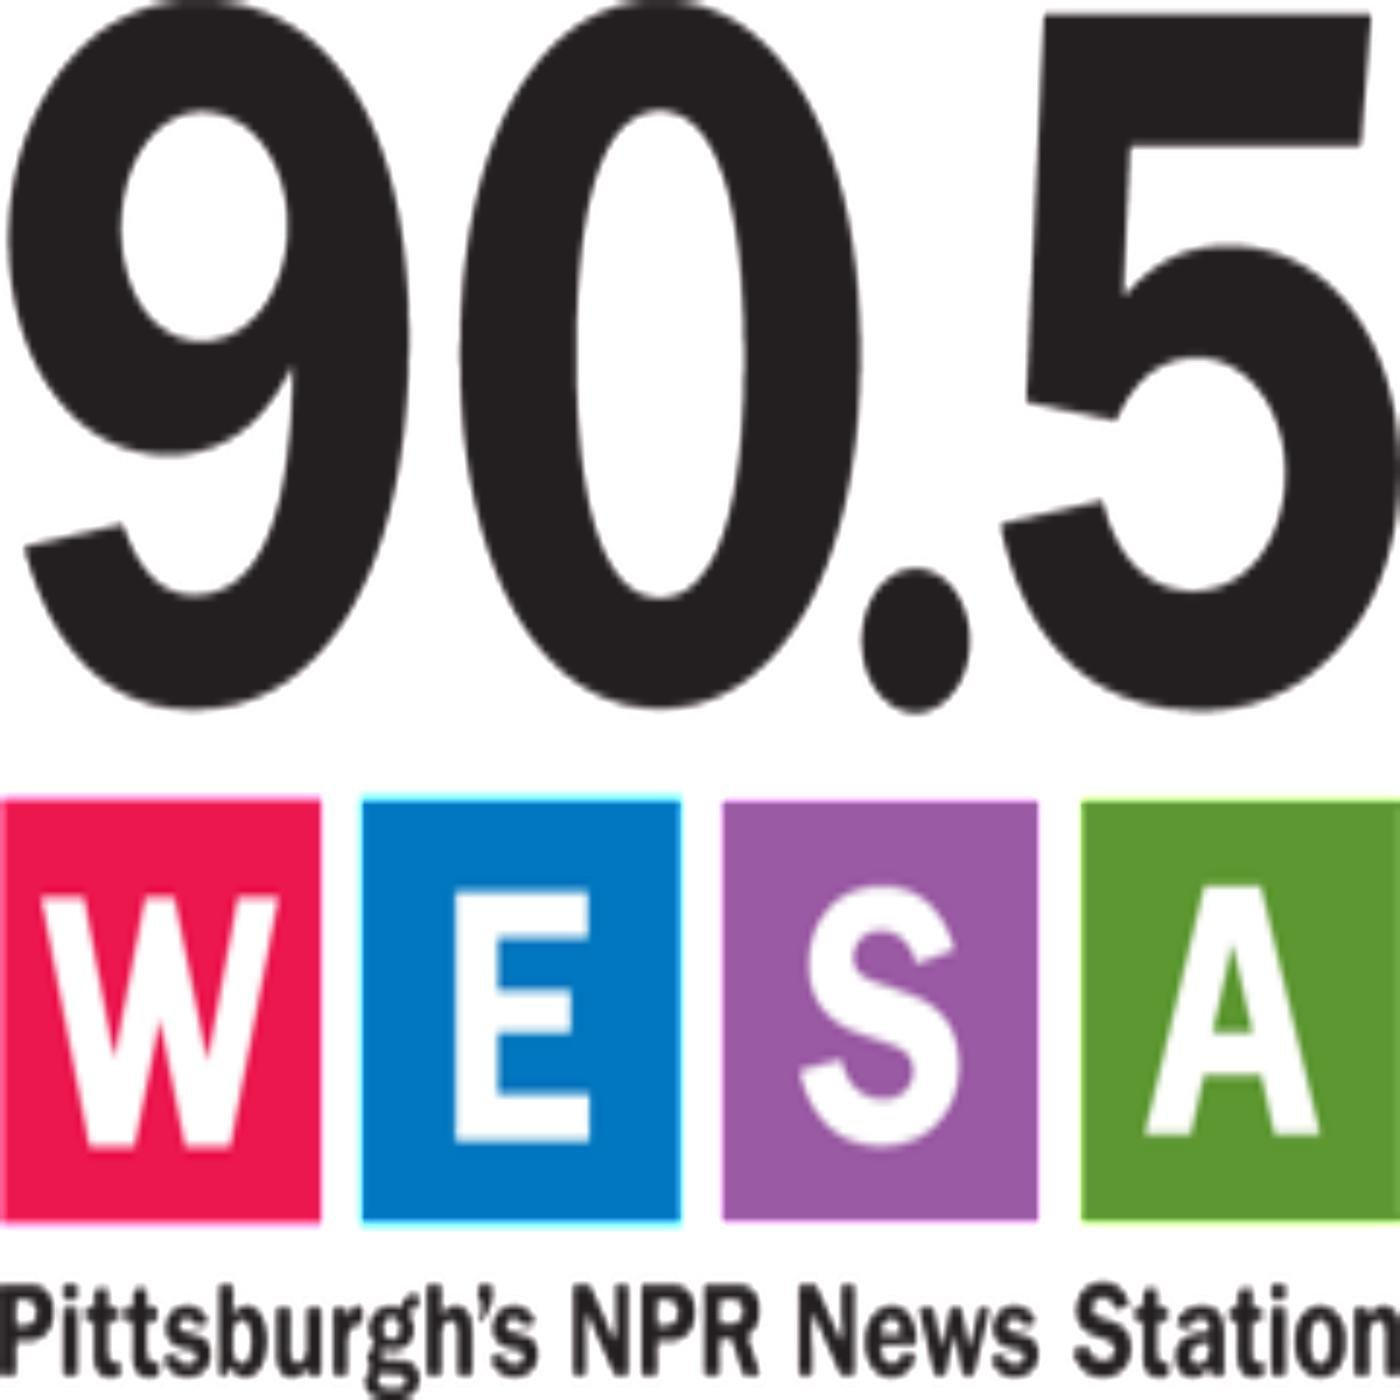 Exhibition Of Pittsburgh Artists Opens In London This Weekend - 90.5 WESA, May 31, 2019